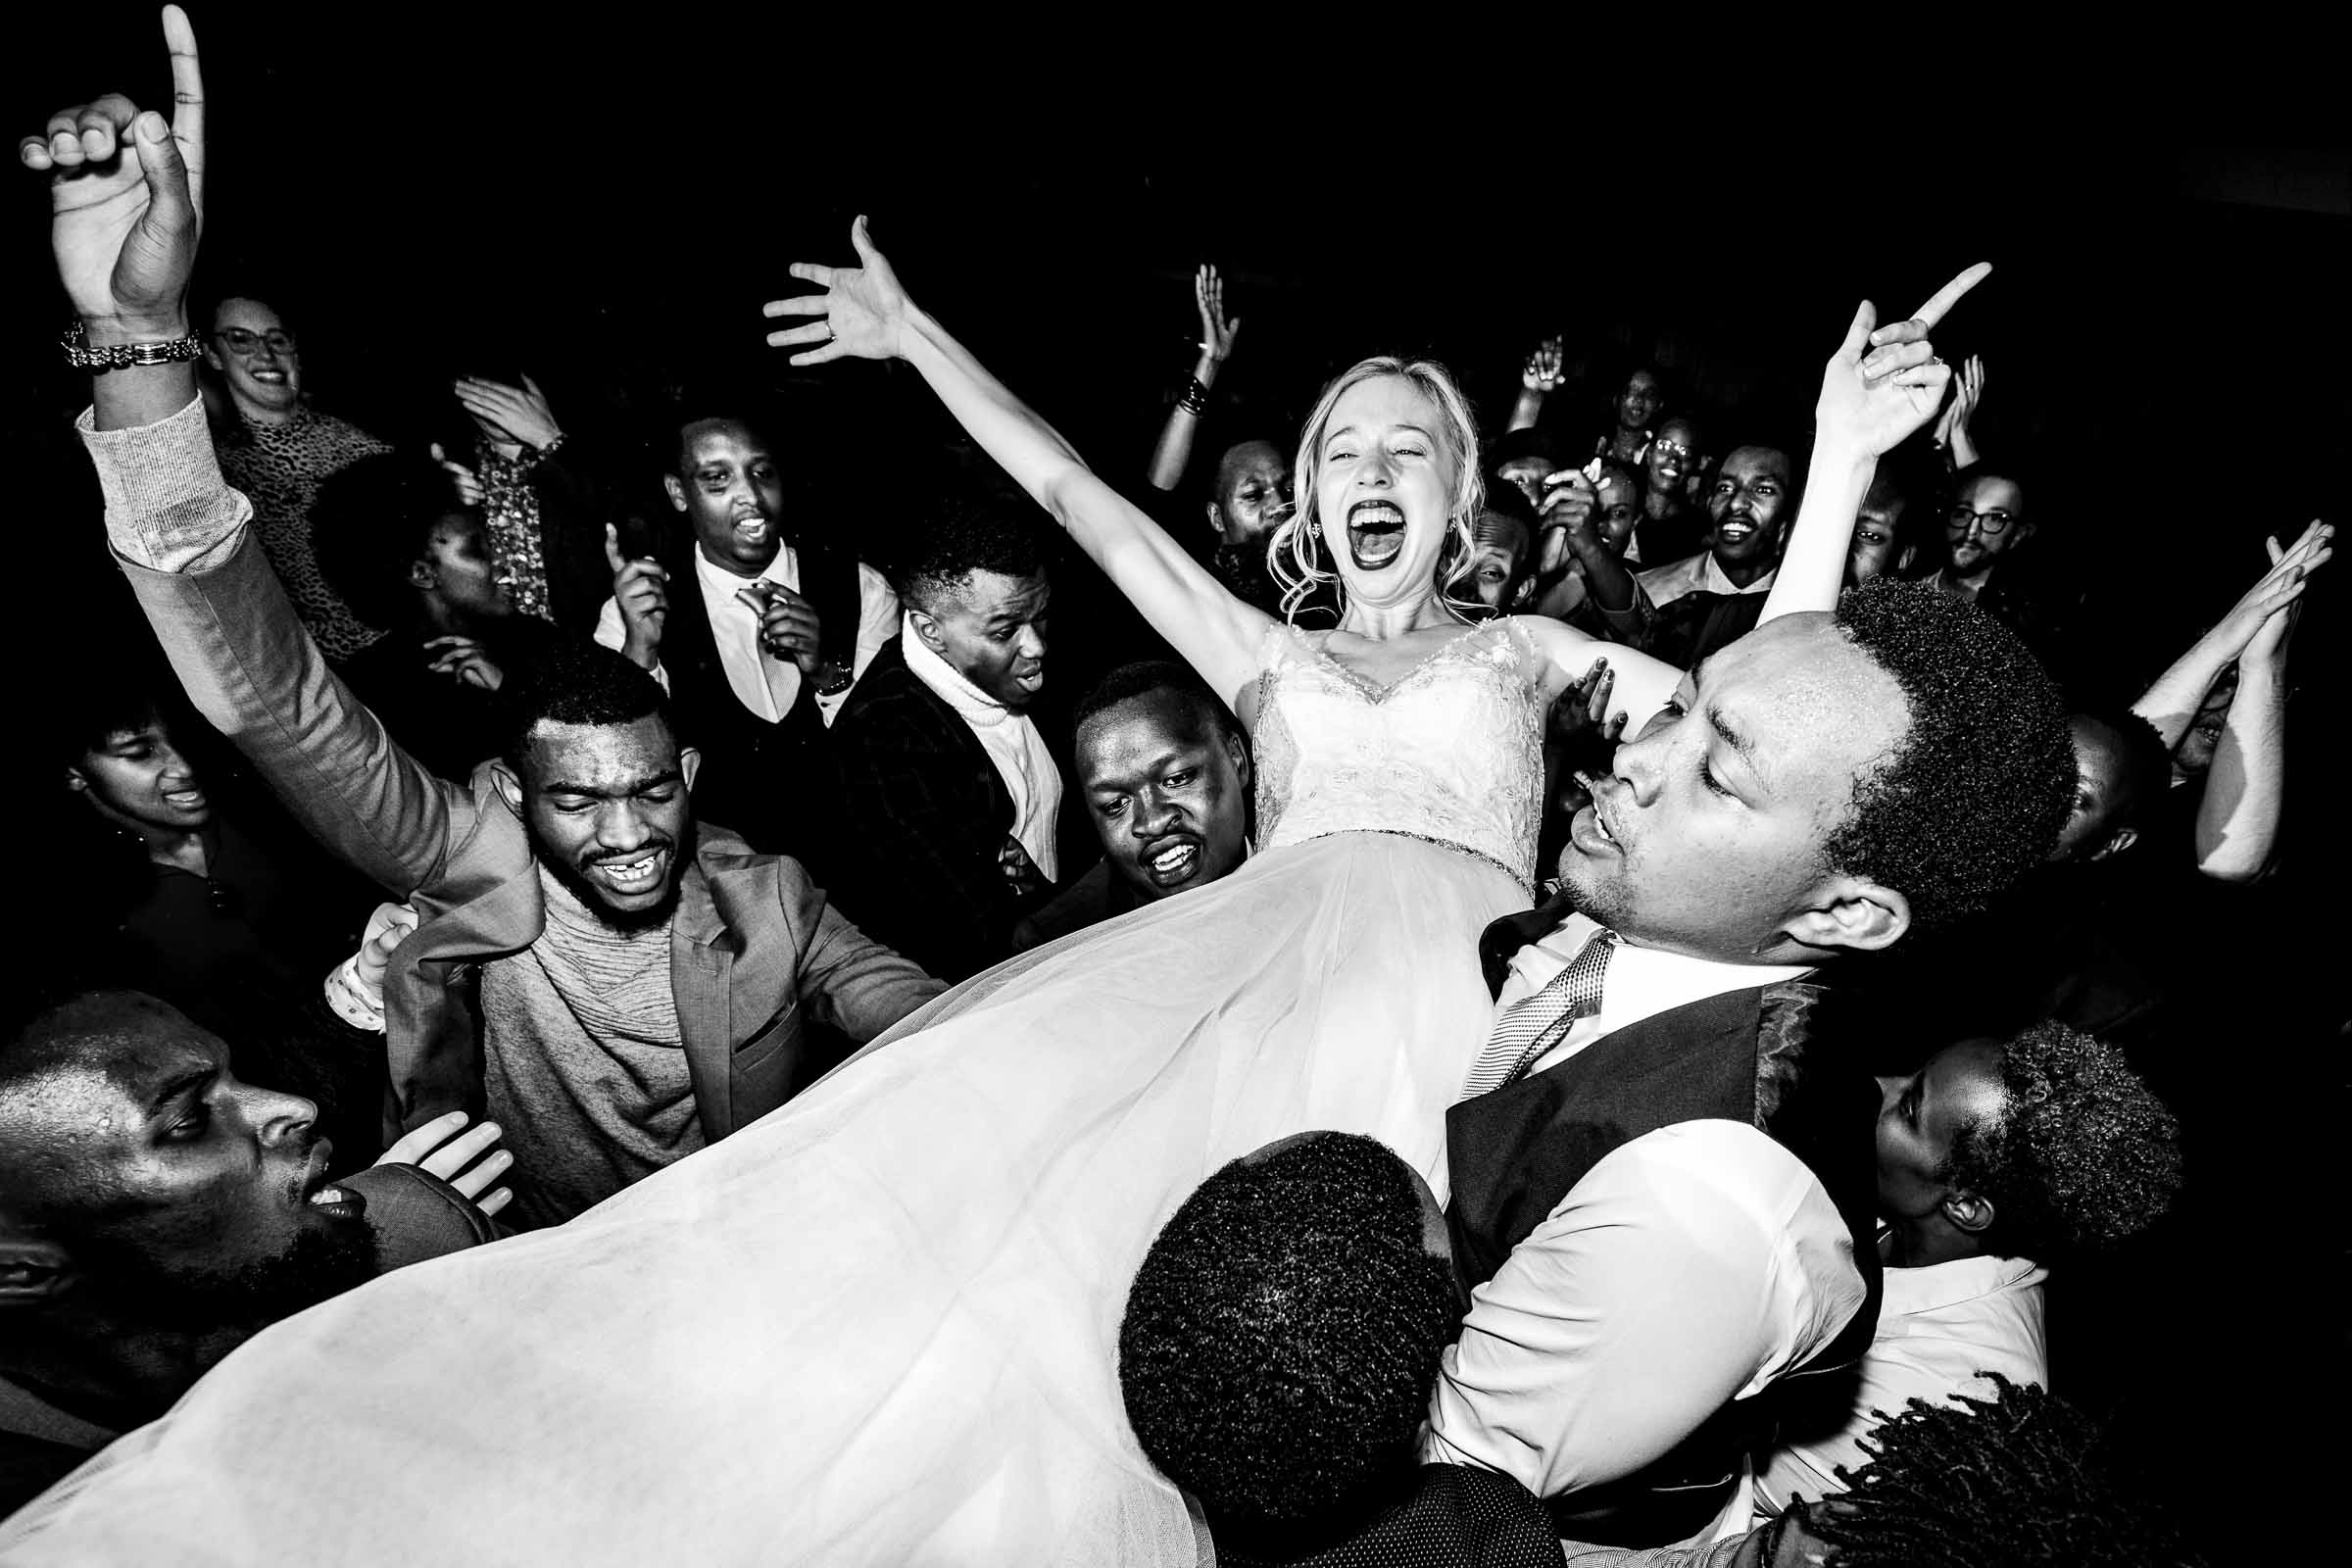 Bride crowdsurfing on top of guests Photo by JOS & TREE